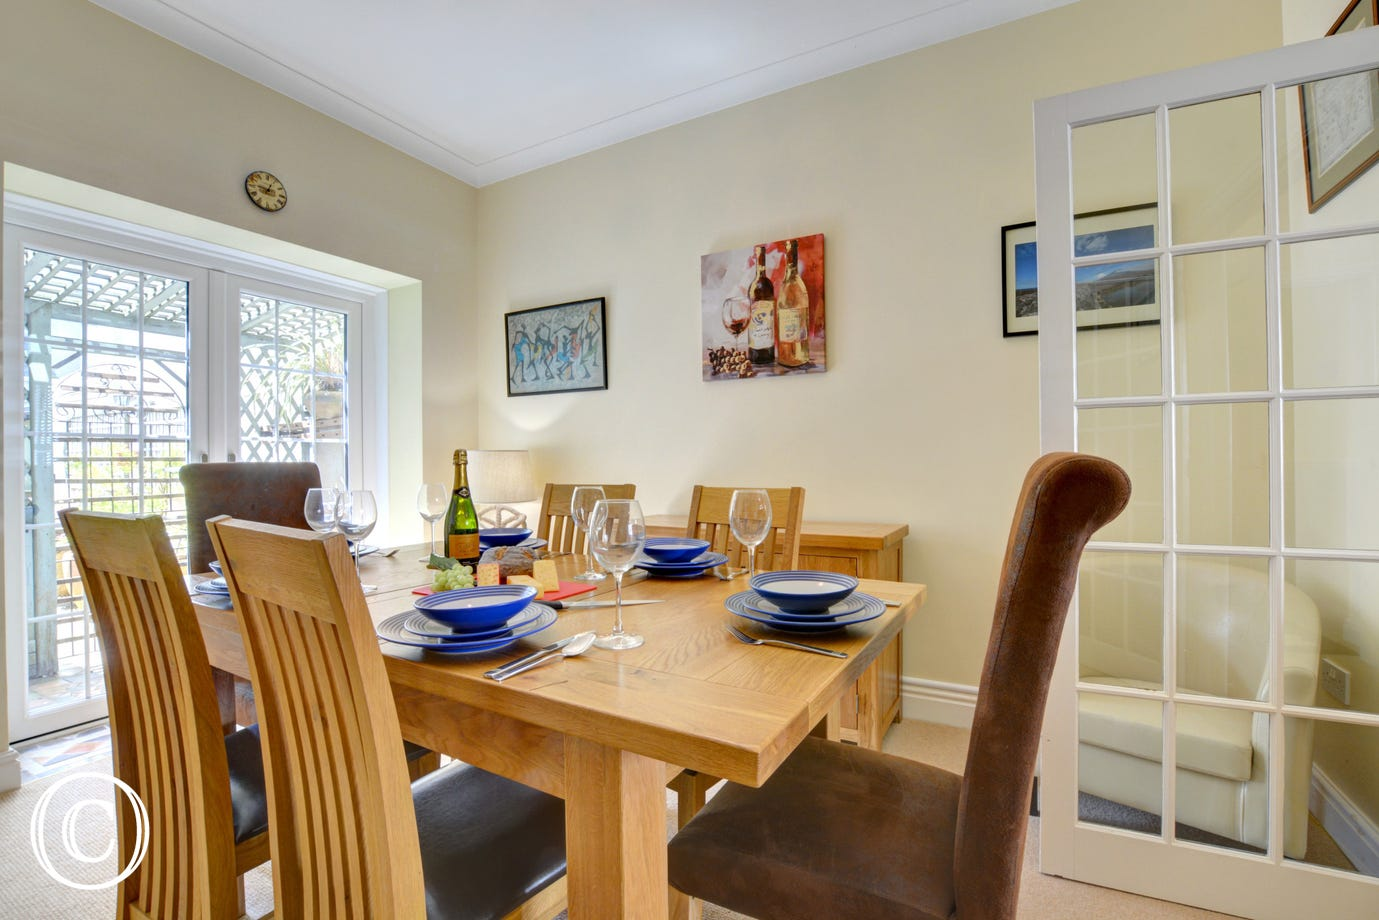 Self catering cottage in Tenby with dining area